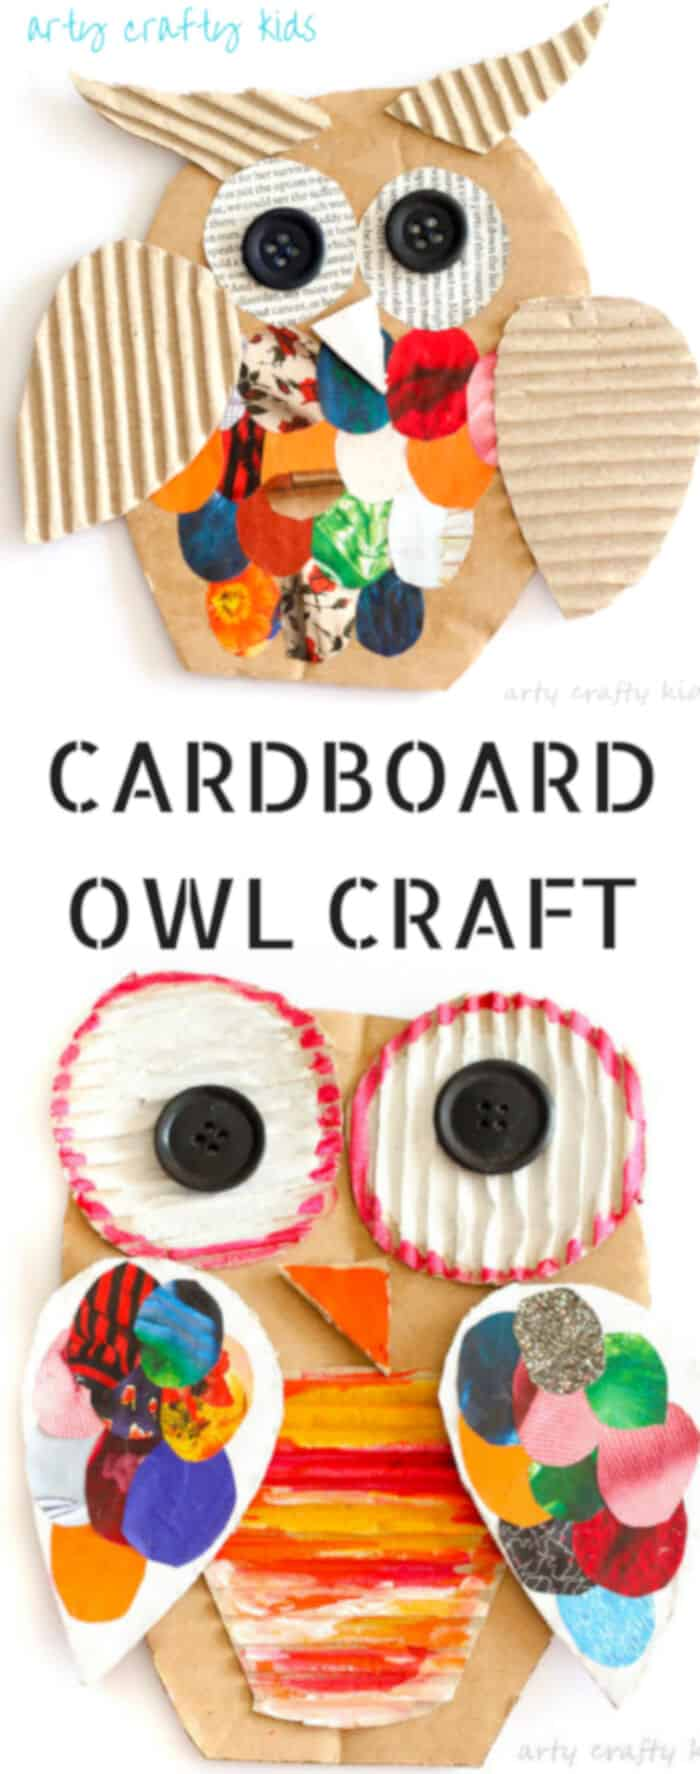 Recycled Cardboard Owl Craft by Arty Crafty Kids